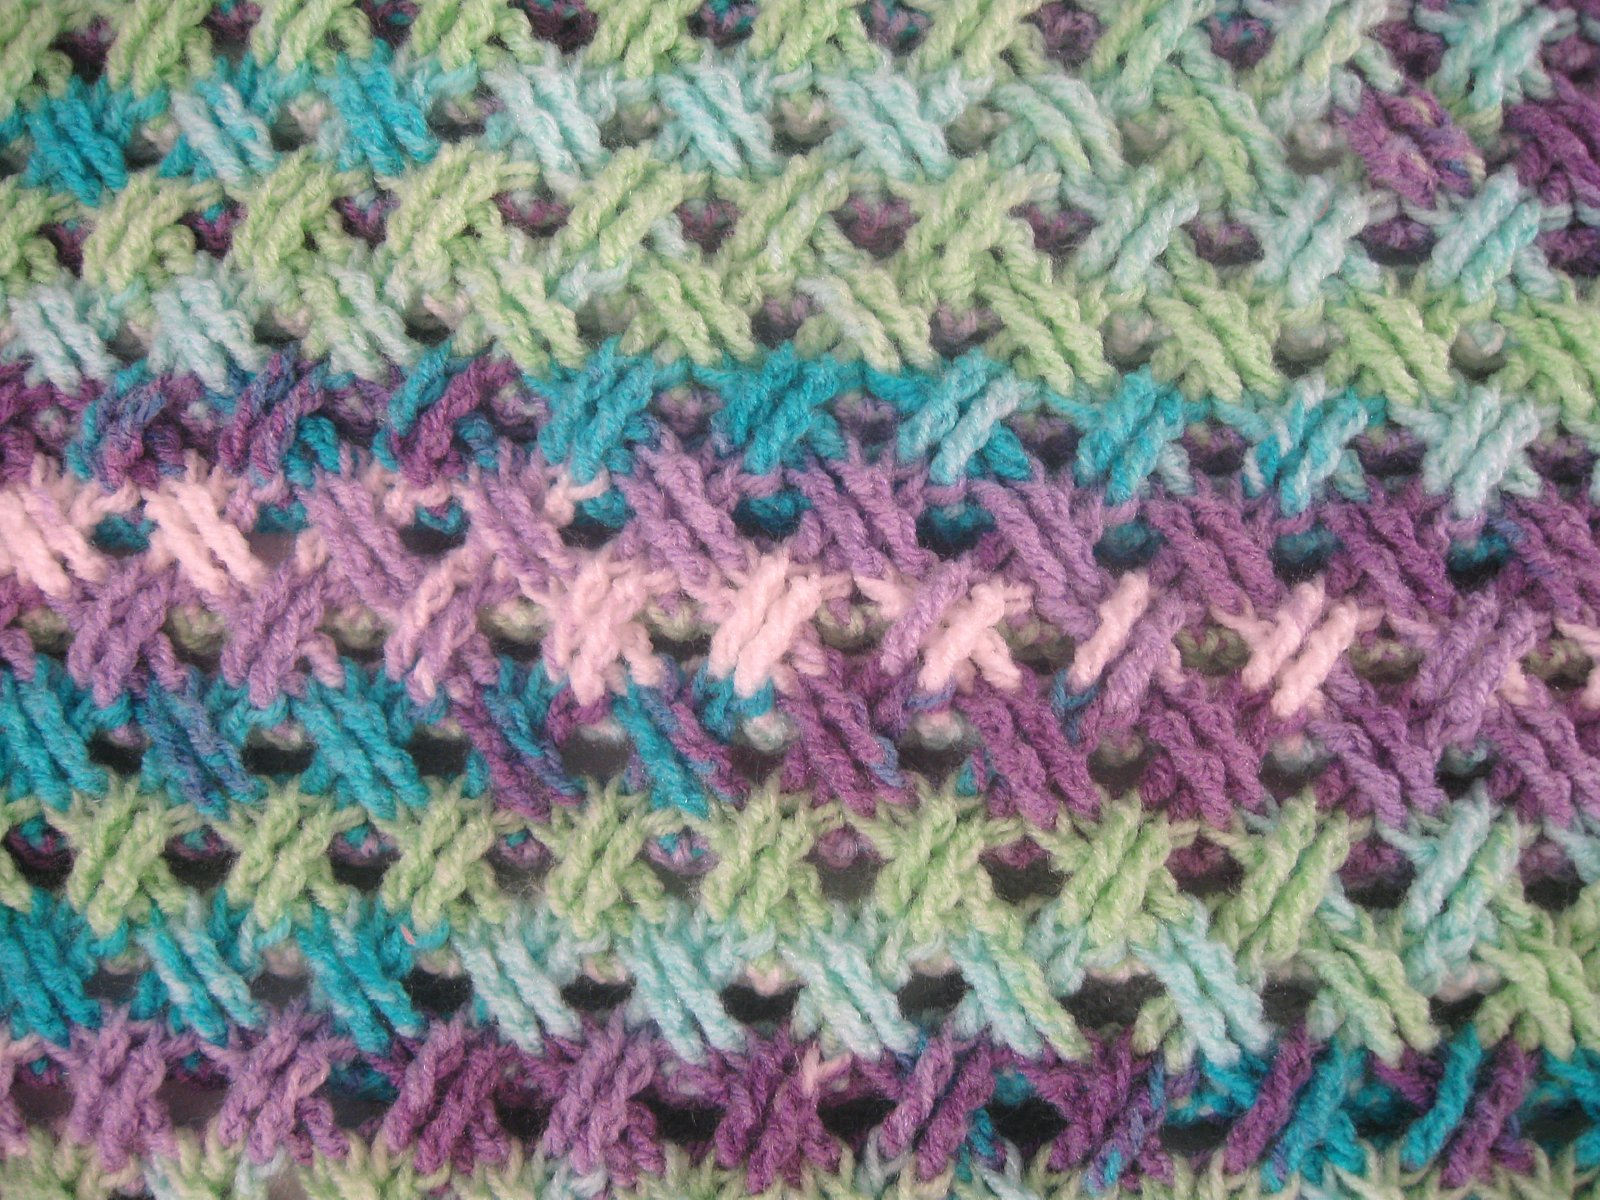 Crochet Stitches Gallery : Crochet Stitches galleryhip.com - The Hippest Galleries!